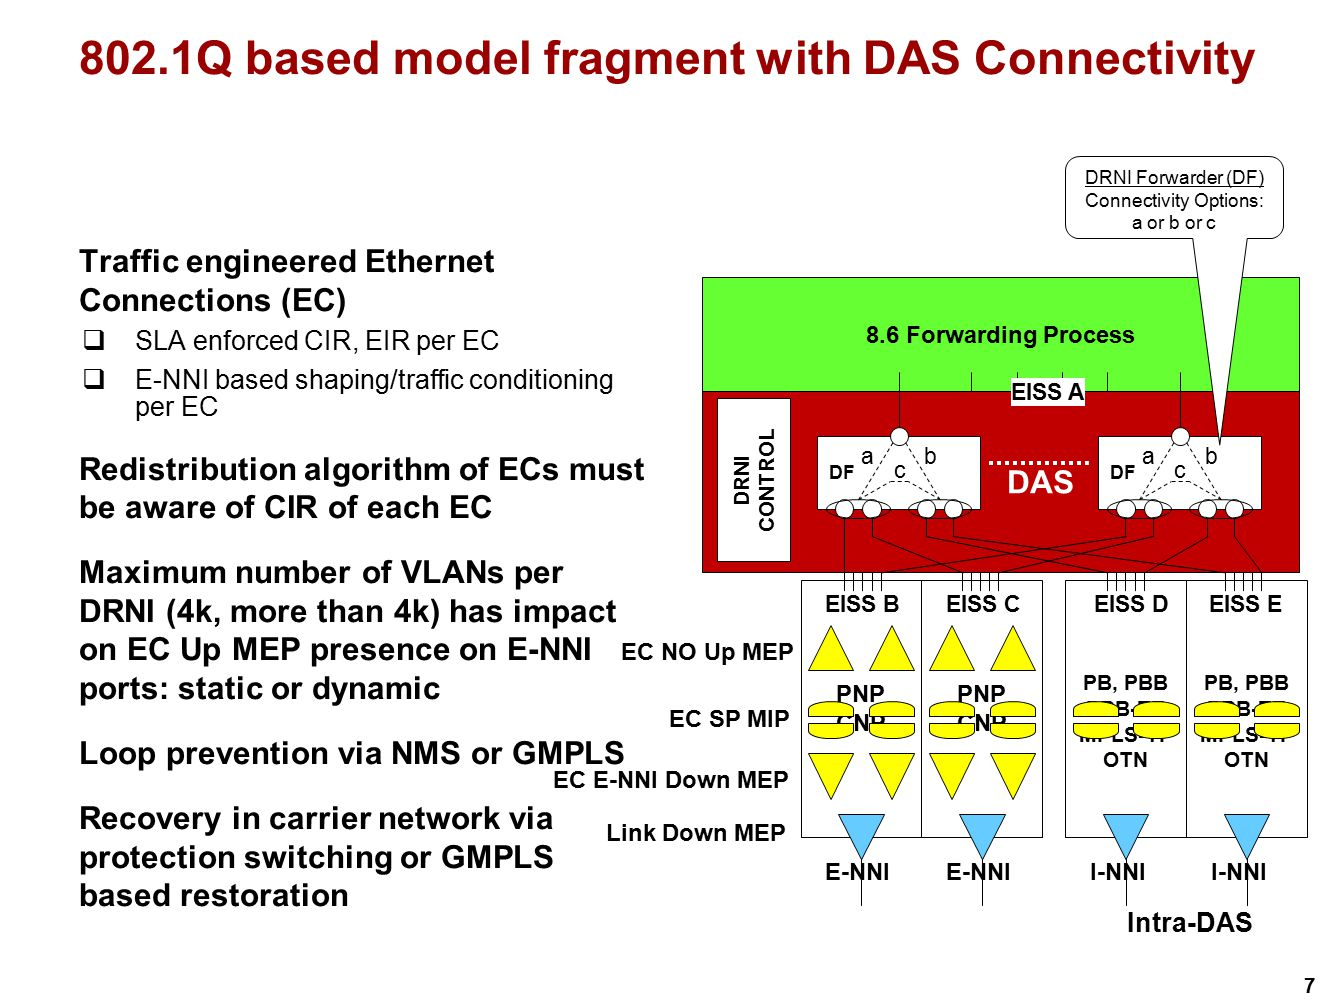 802.1Q based model fragment with DAS Connectivity